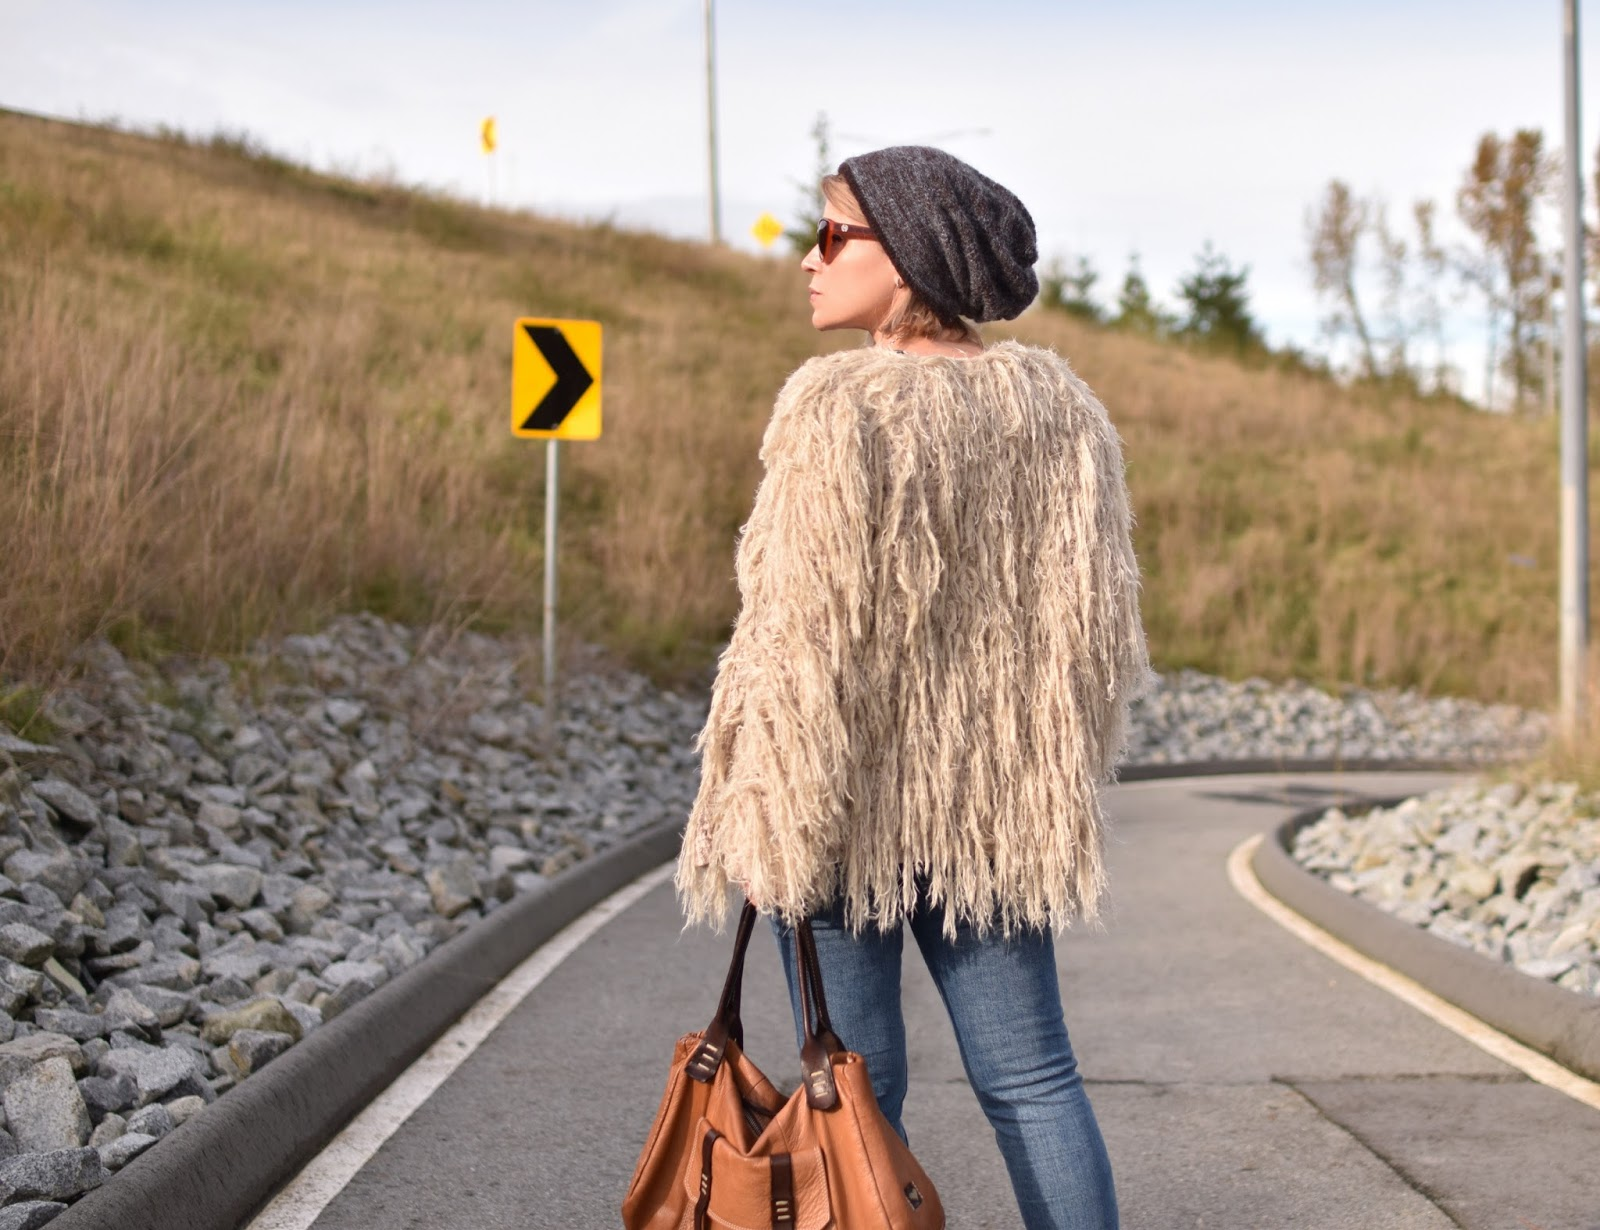 Outfit inspiration c/o Monika Faulkner - shaggy cardigan, skinny jeans, ivory booties, woolen beanie